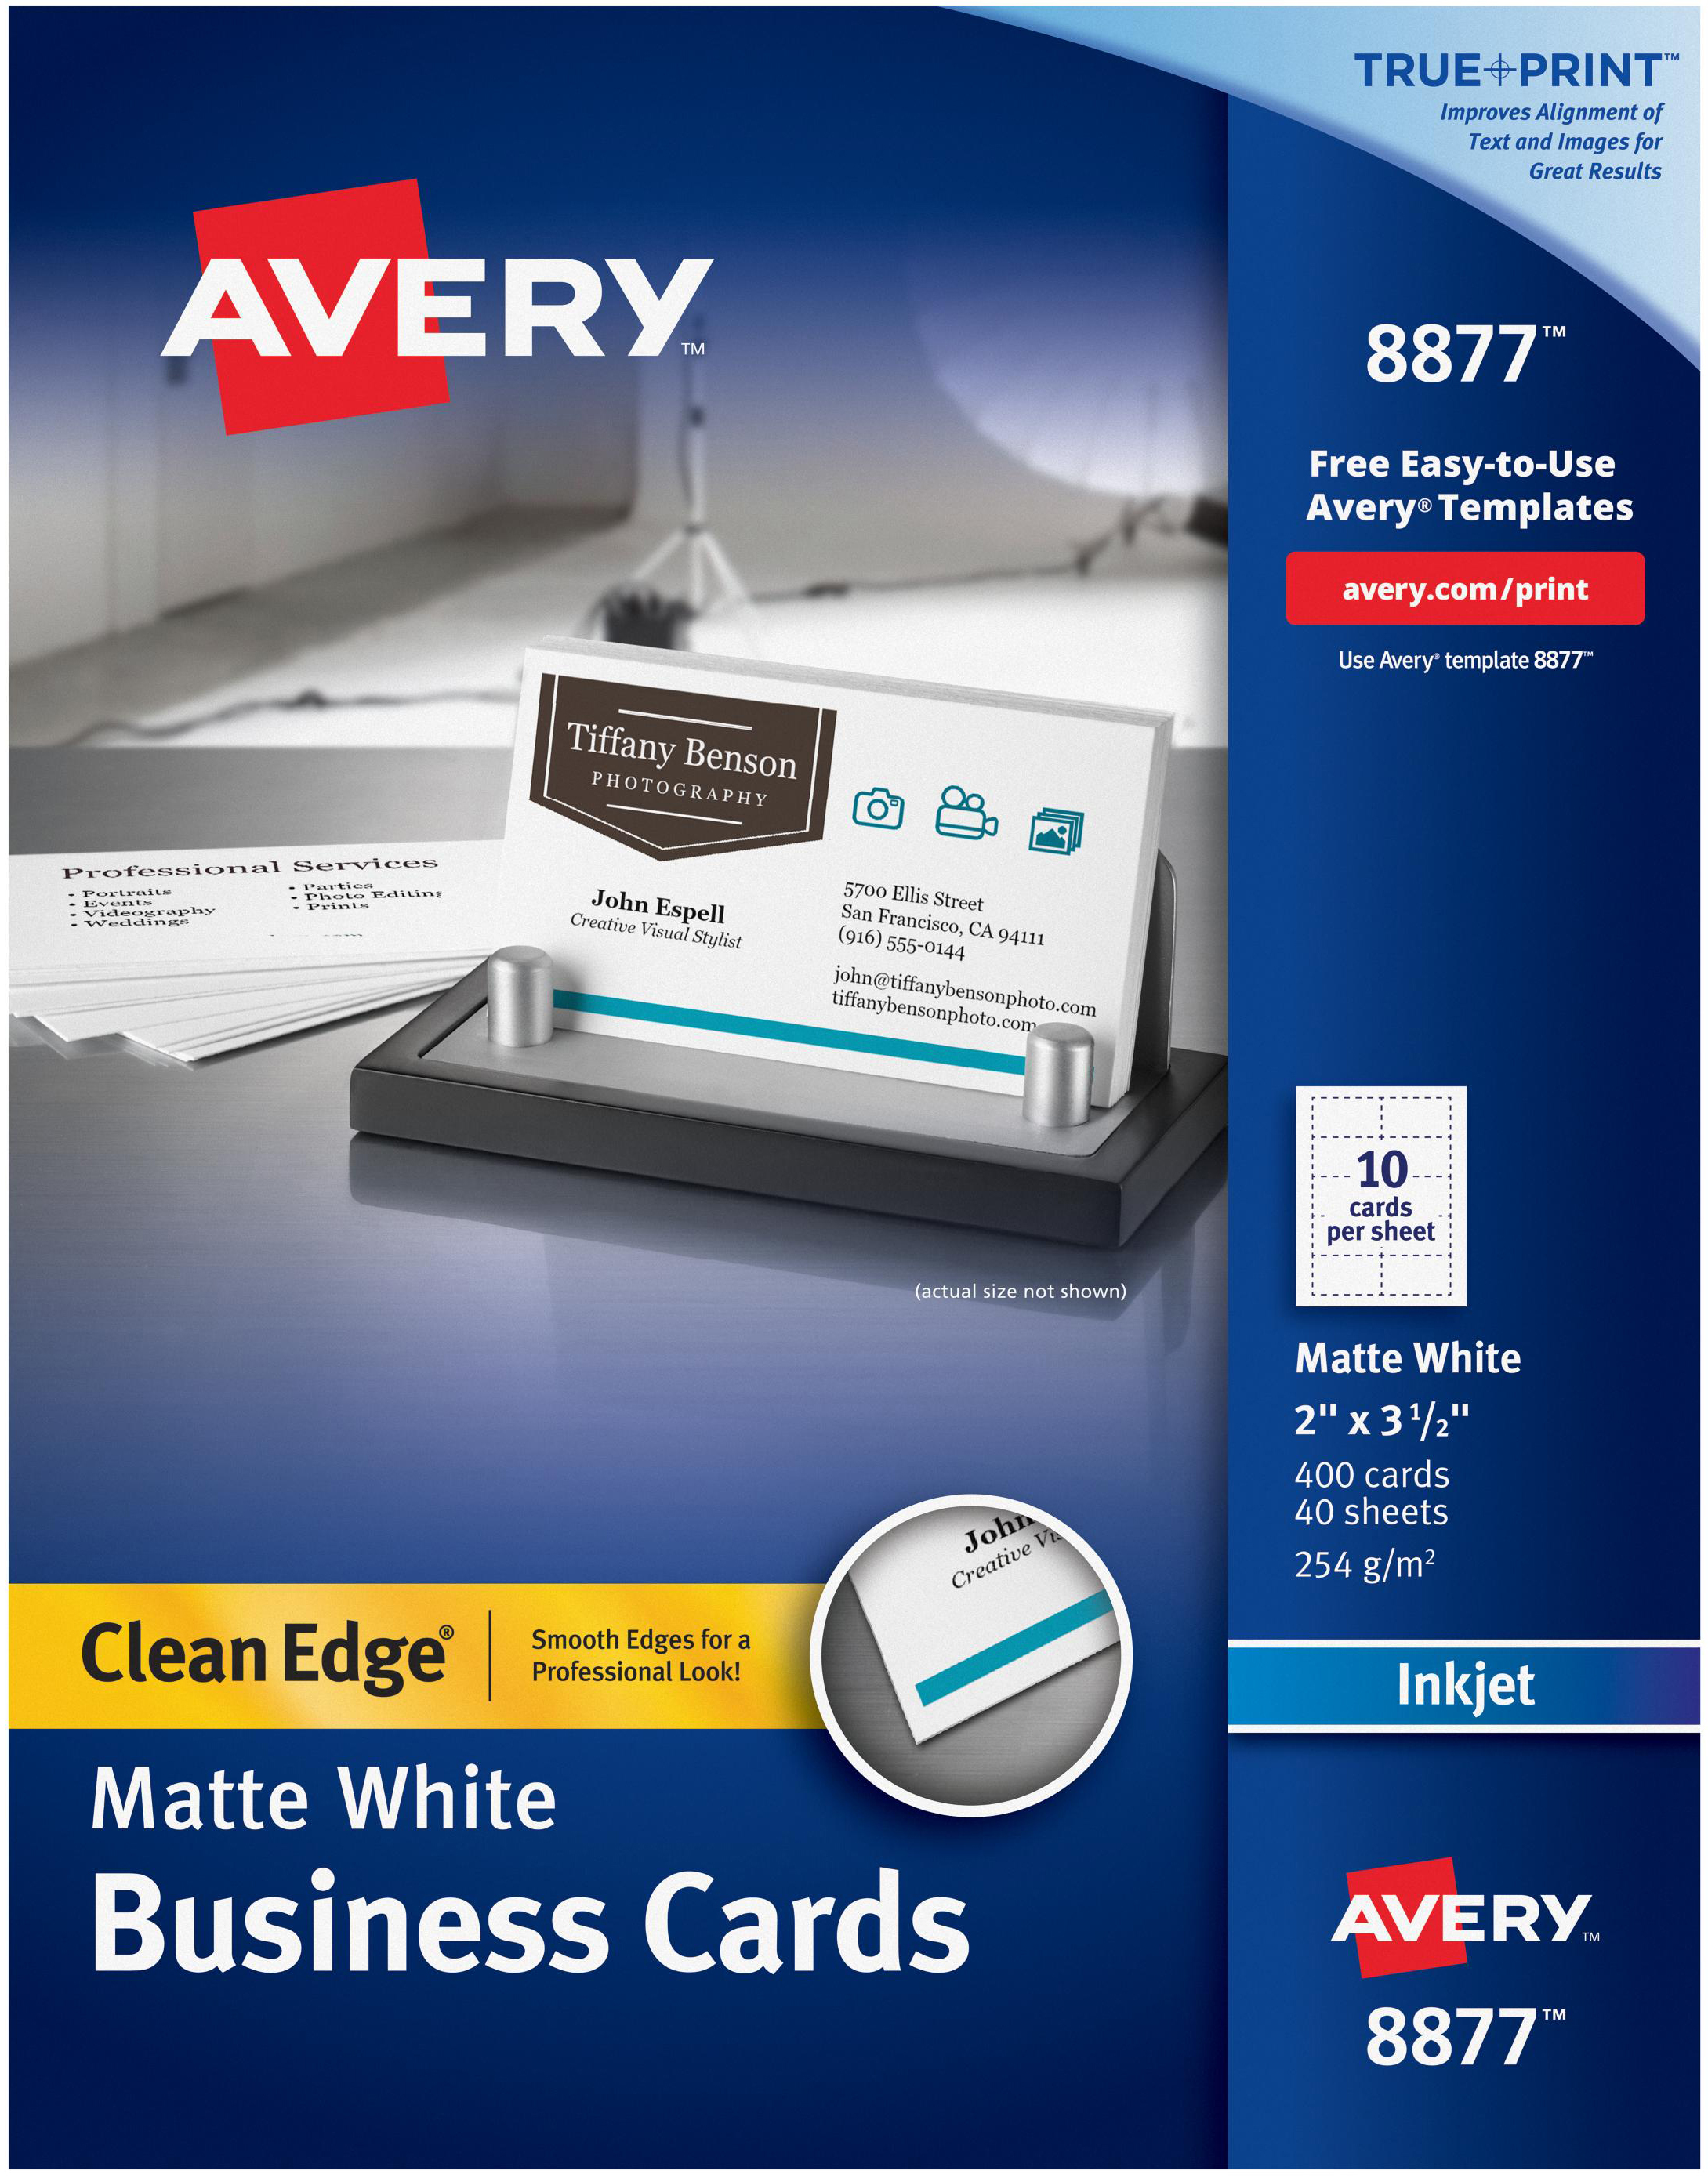 Avery matte white clean edge business cards 2x35 400pkg for avery matte white clean edge business cards 2x35 400pkg for inkjet printers reheart Image collections